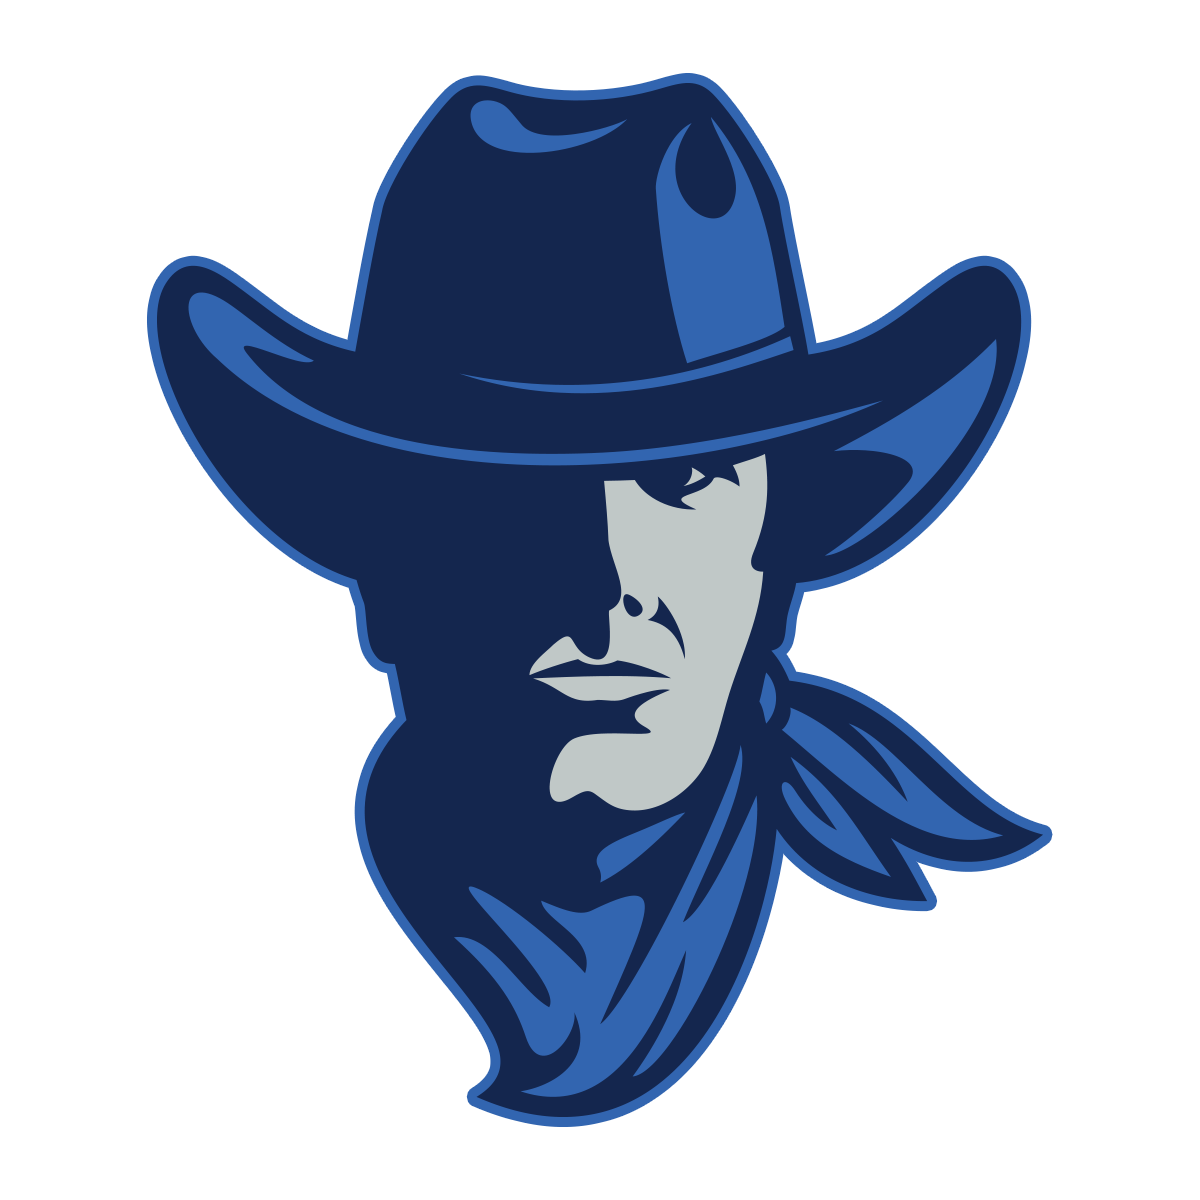 Cowboys logo png. Wire get the latest